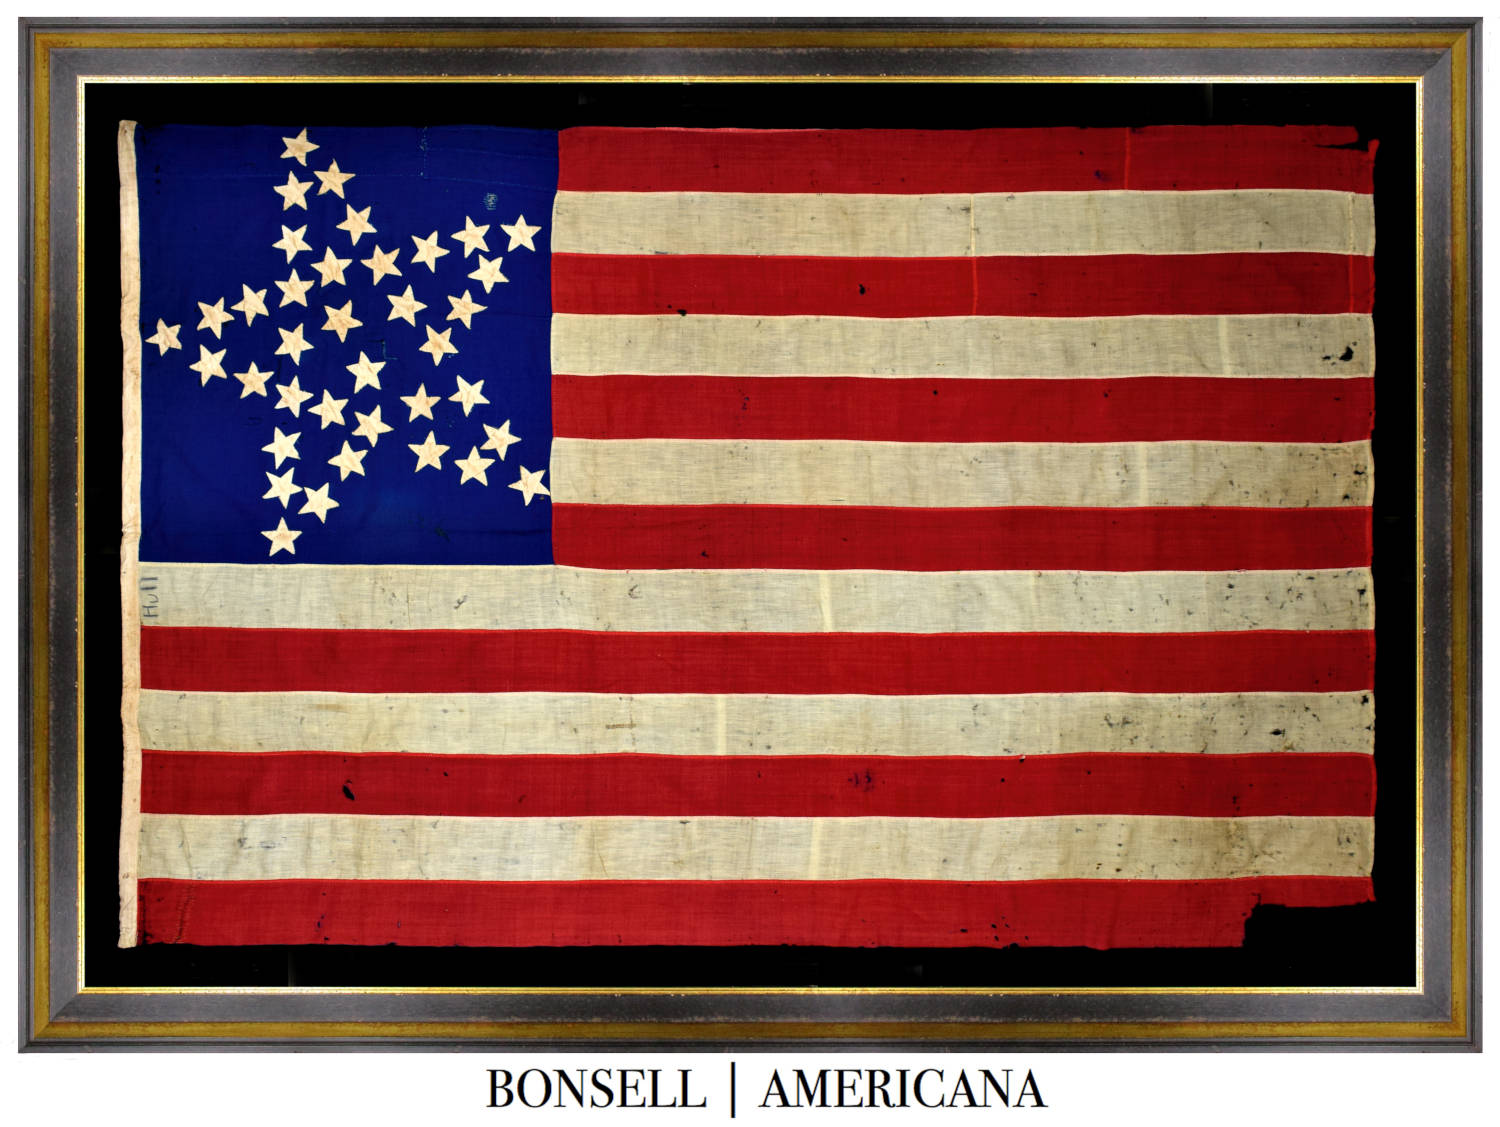 37 Star Antique Flag with Grand Luminary Pattern